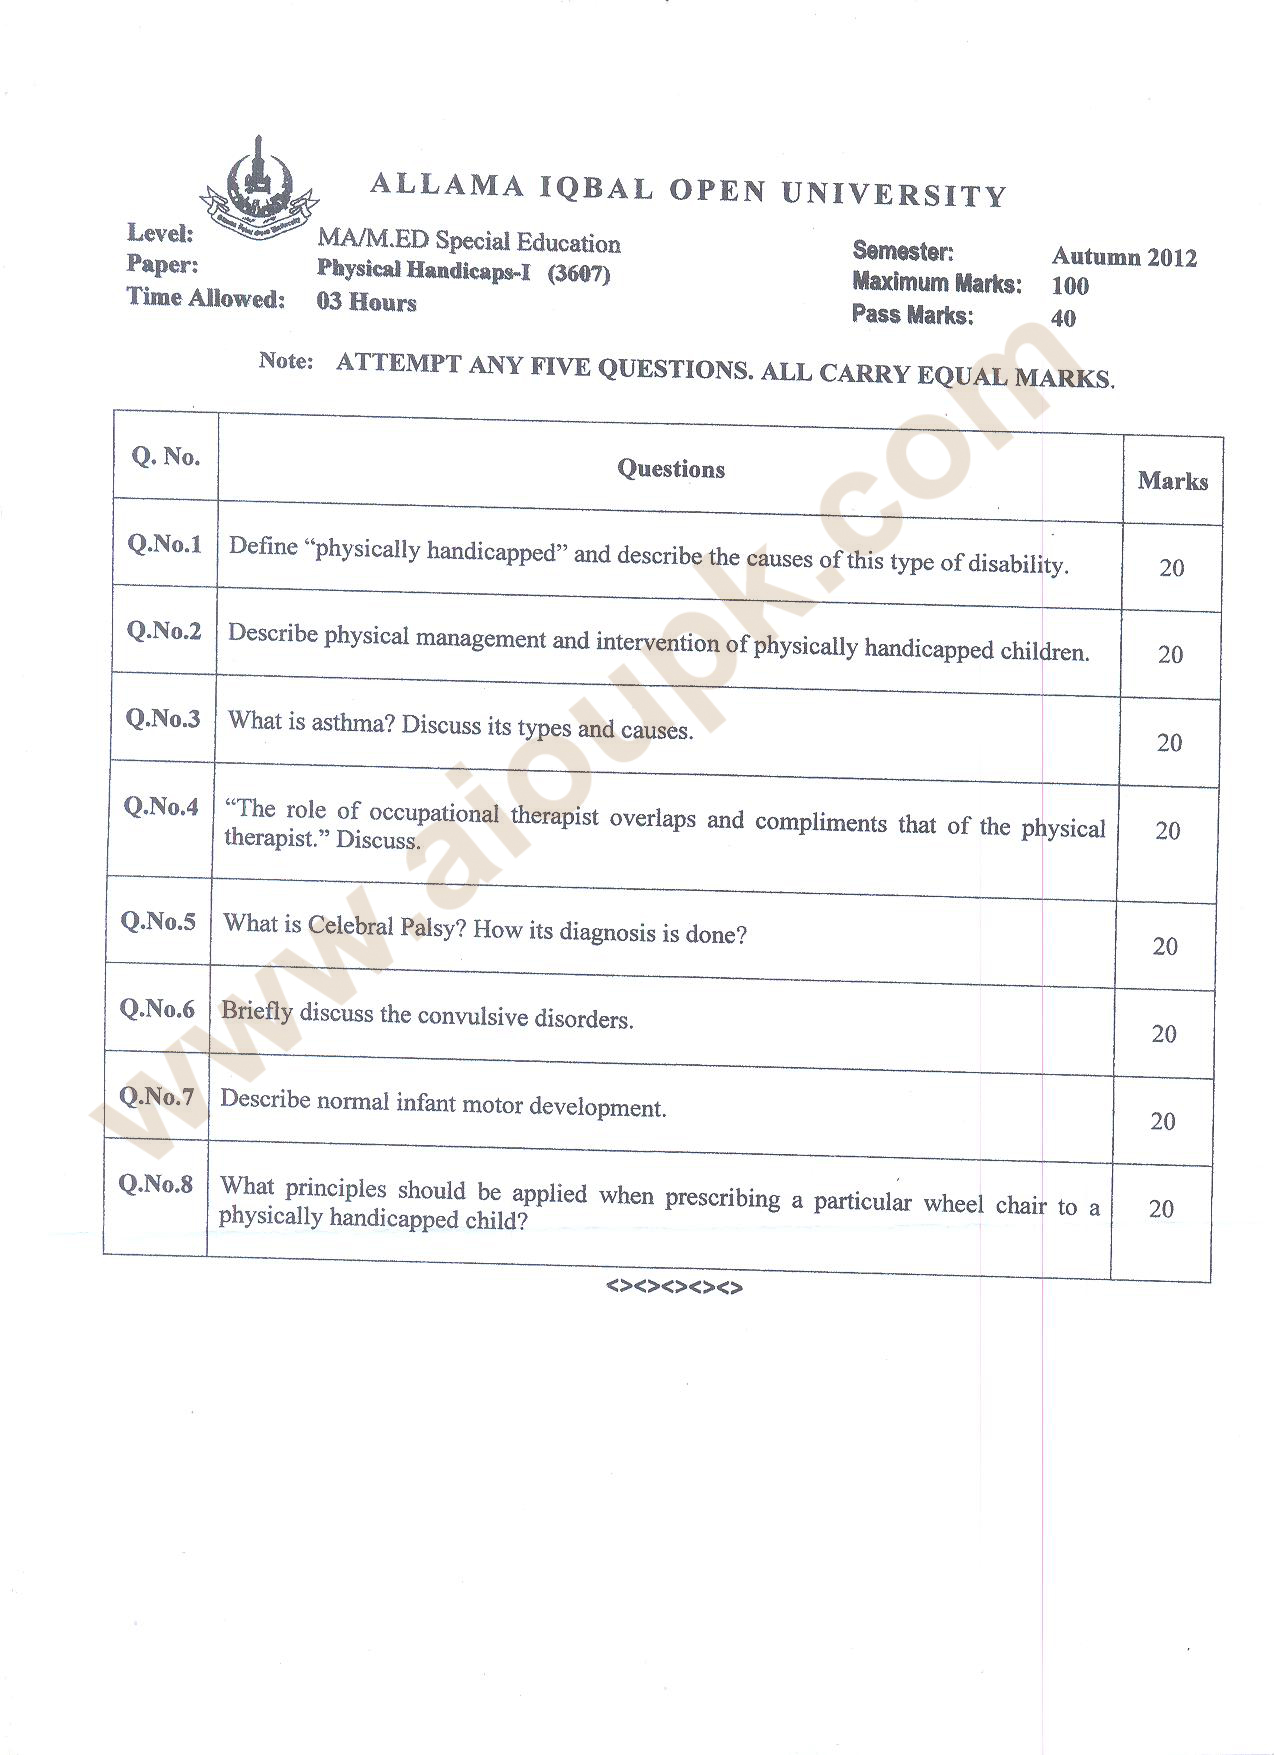 Physical Handicaps-I Code 3607 AIOU Old Papers